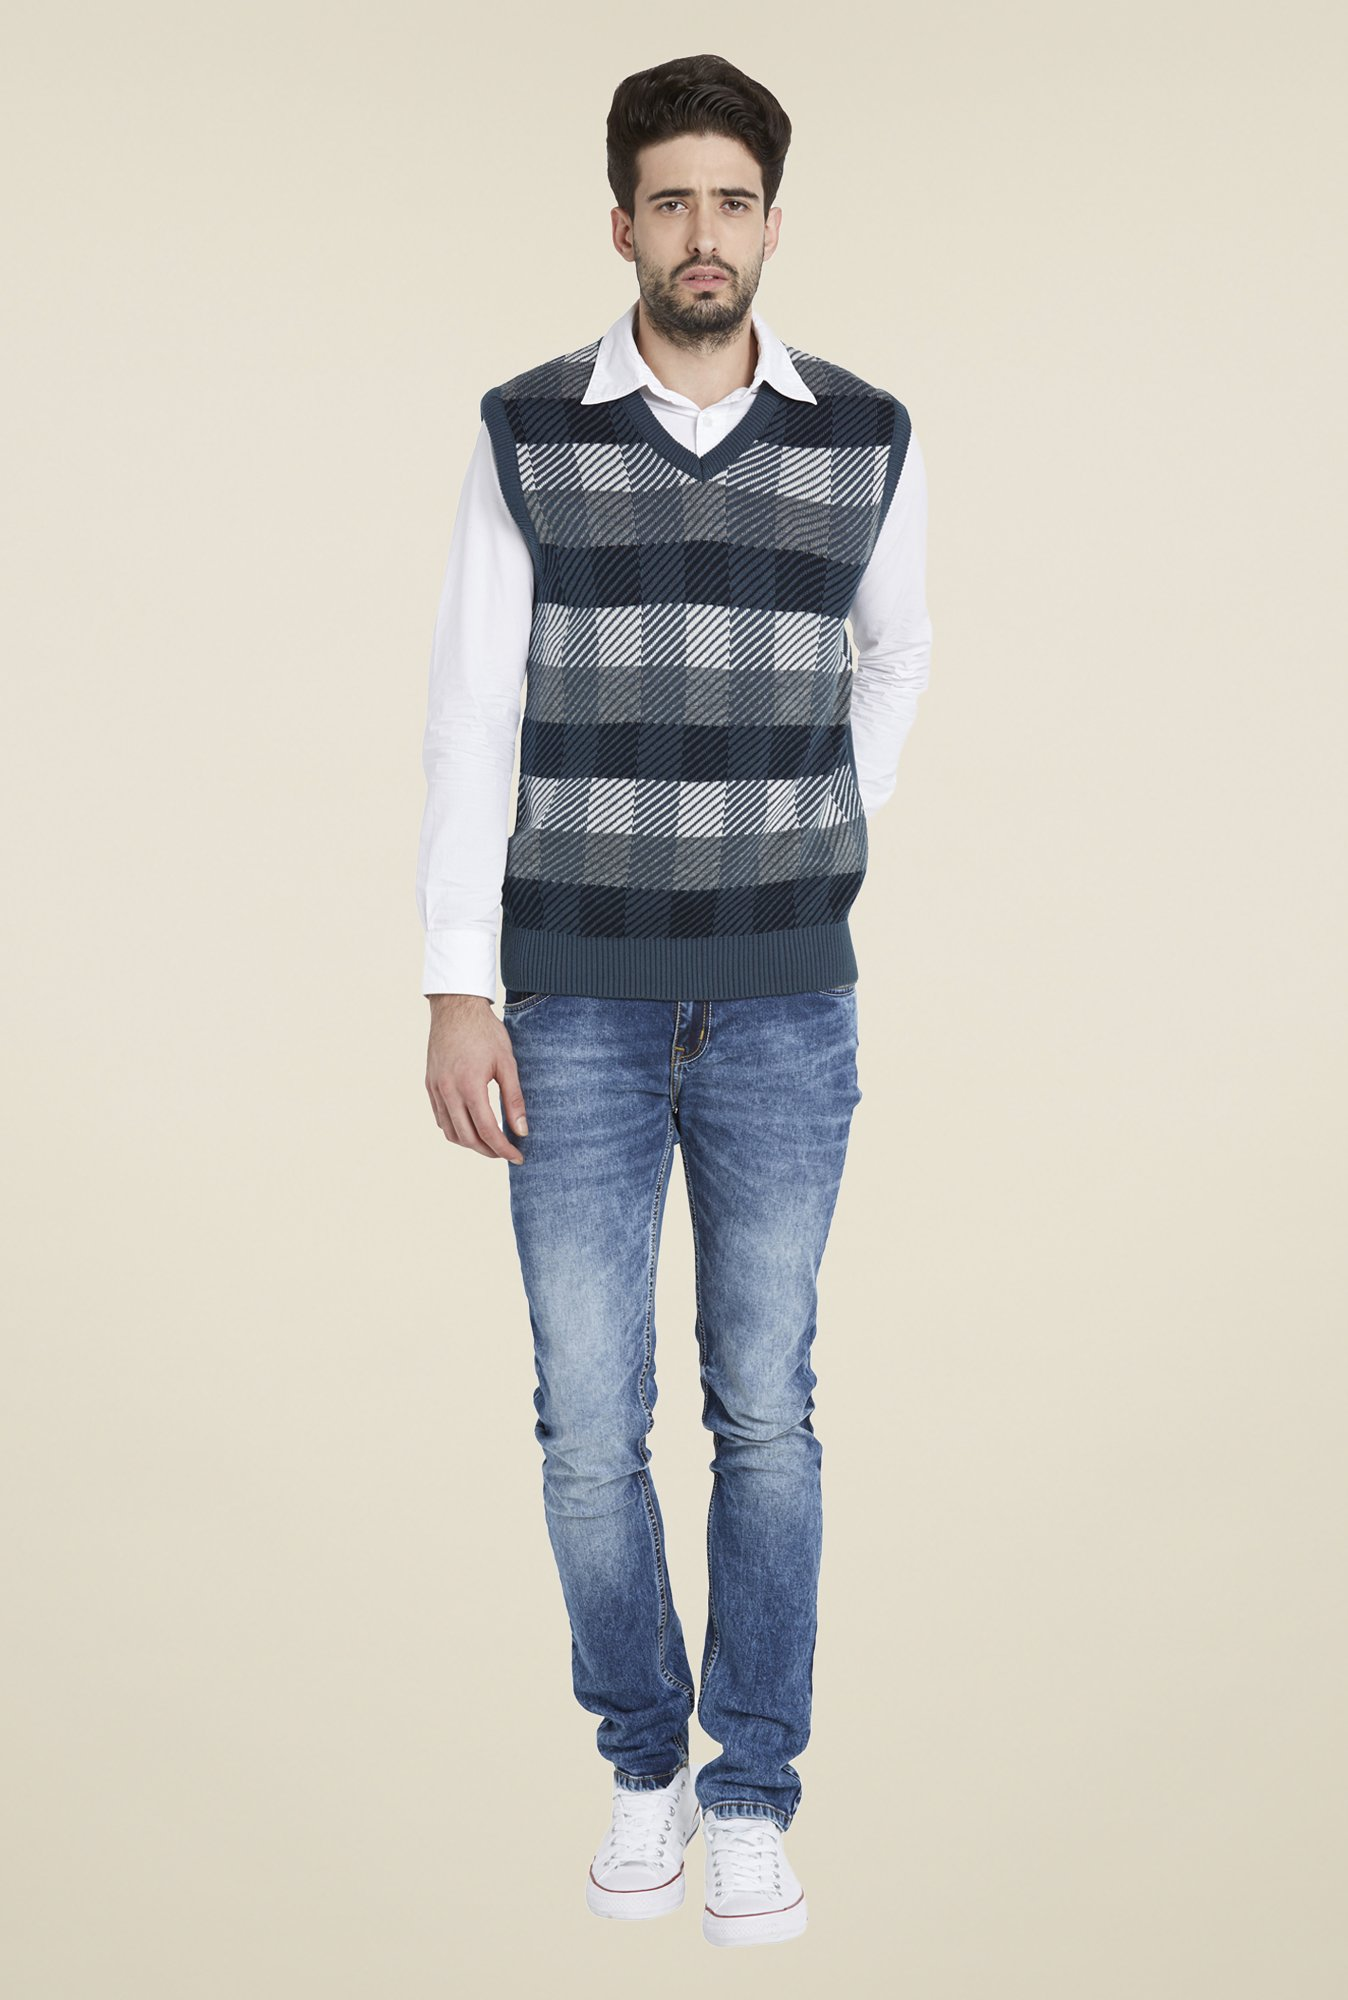 Globus Blue Checks Sweater